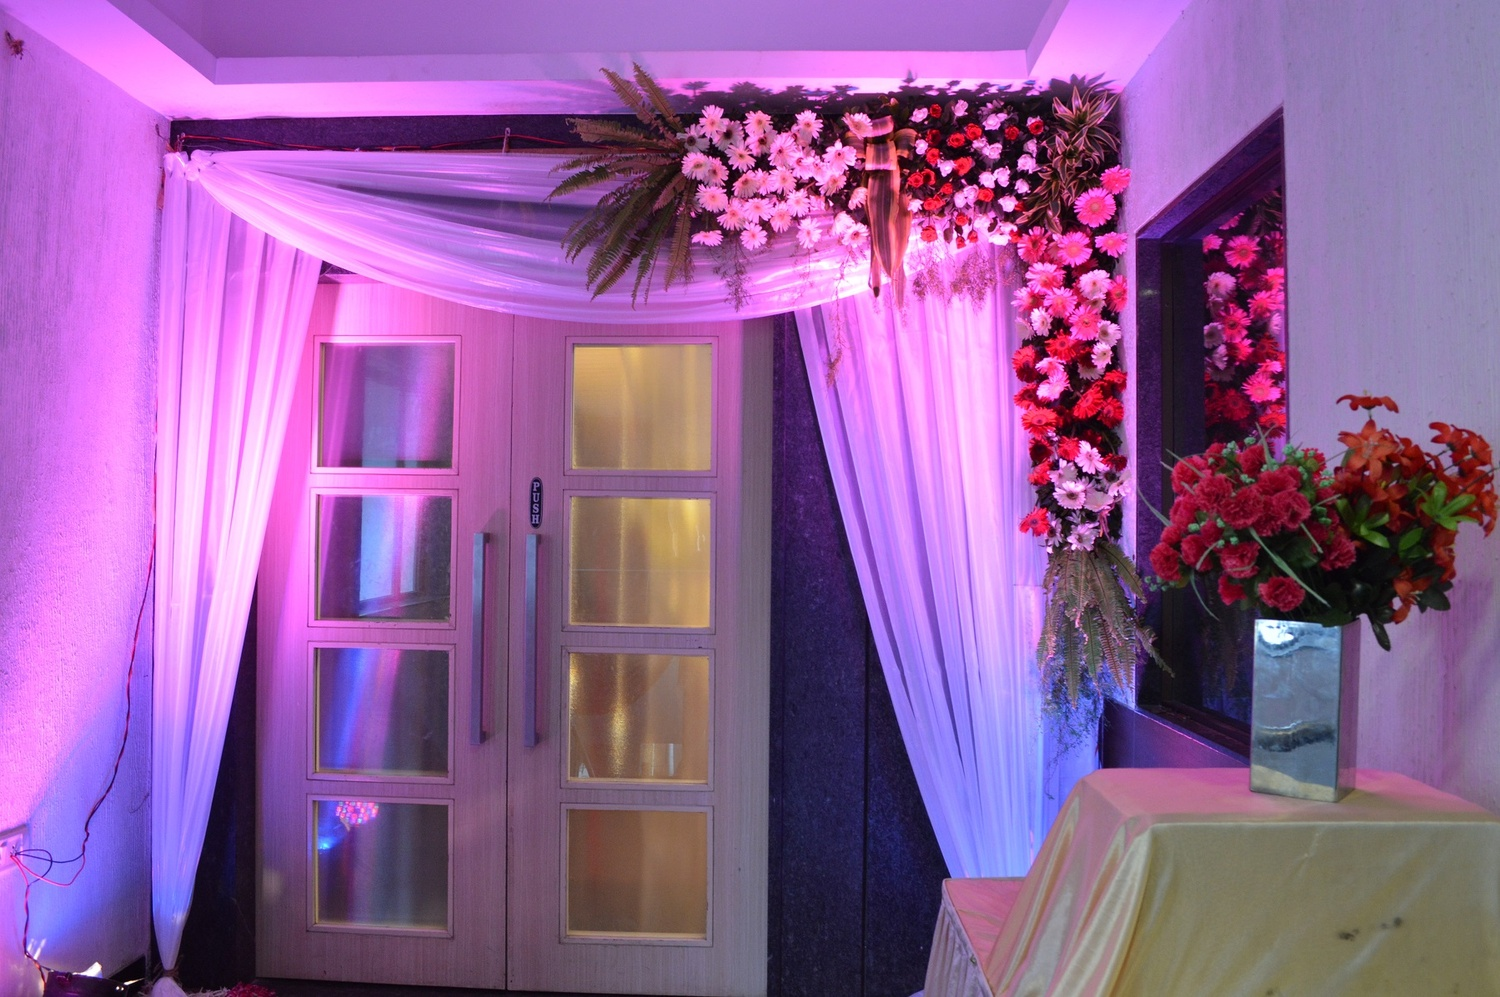 gcc hotel and club mira road, mumbai | banquet hall | wedding lawn